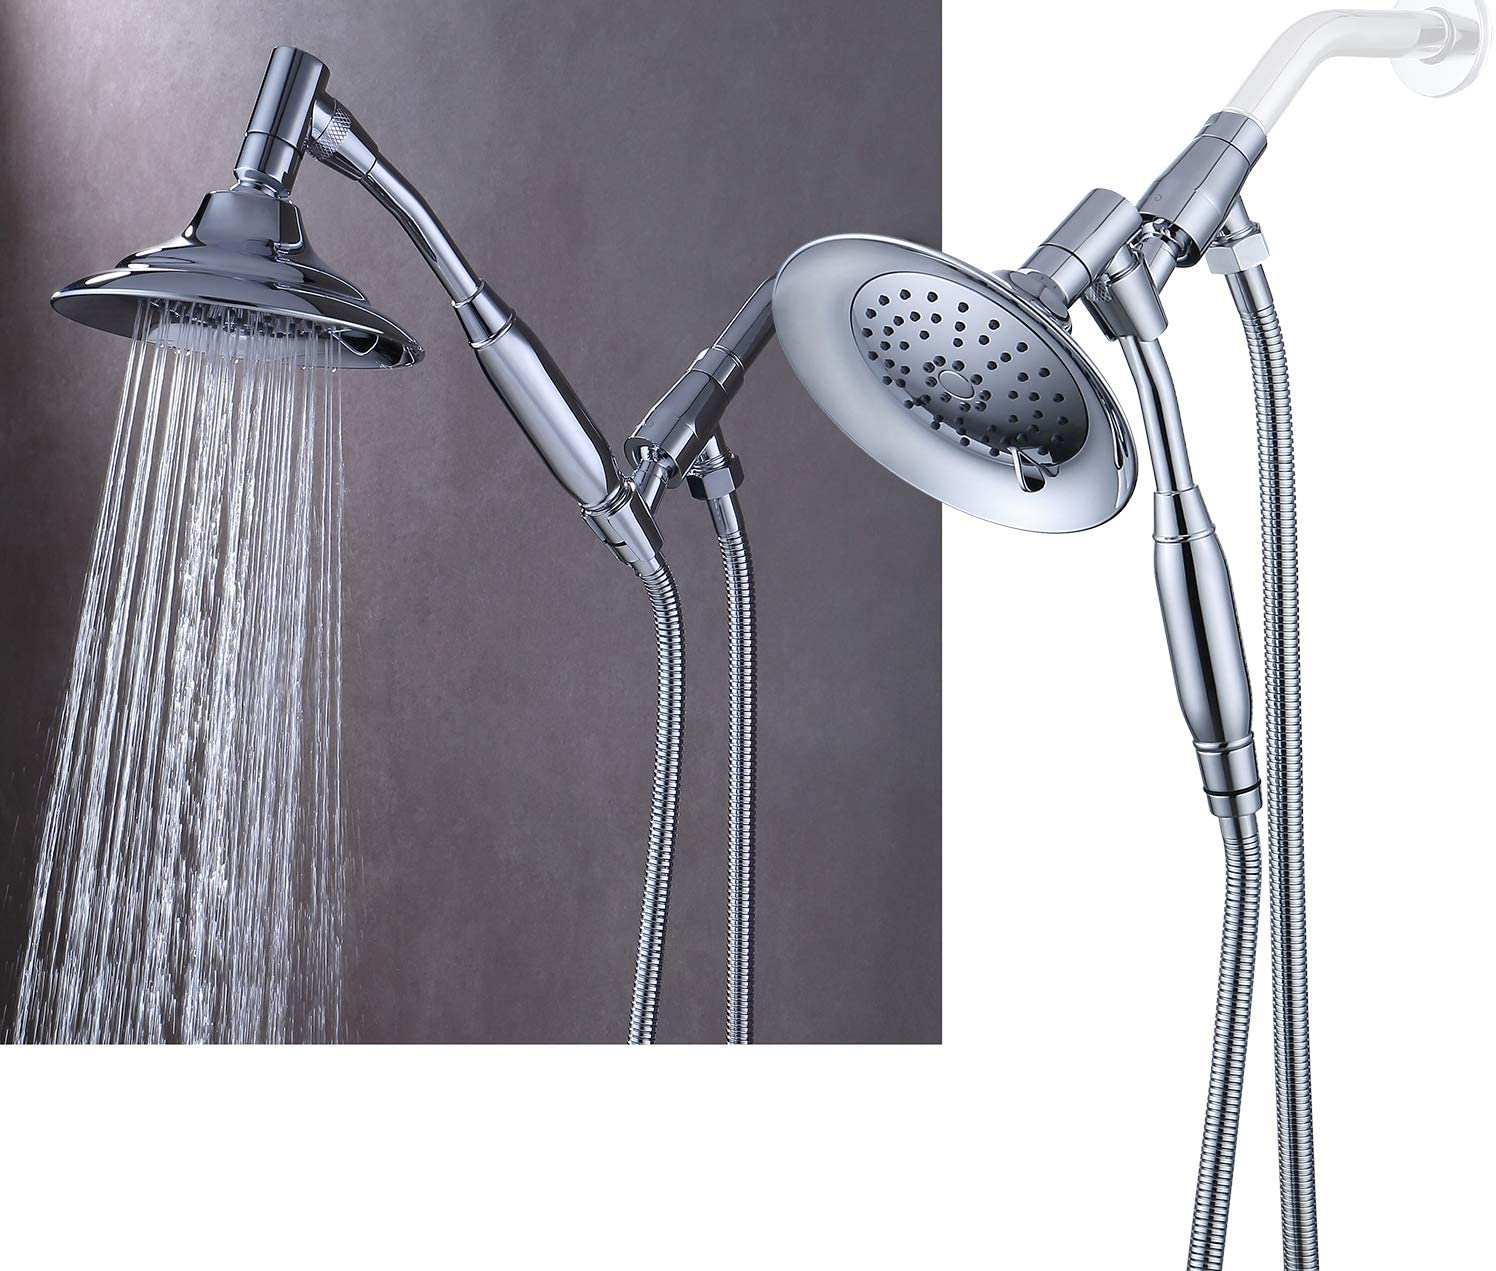 4 rooms Shower head Kit shower COMPLETE Stainless Steel Flexible // NEW